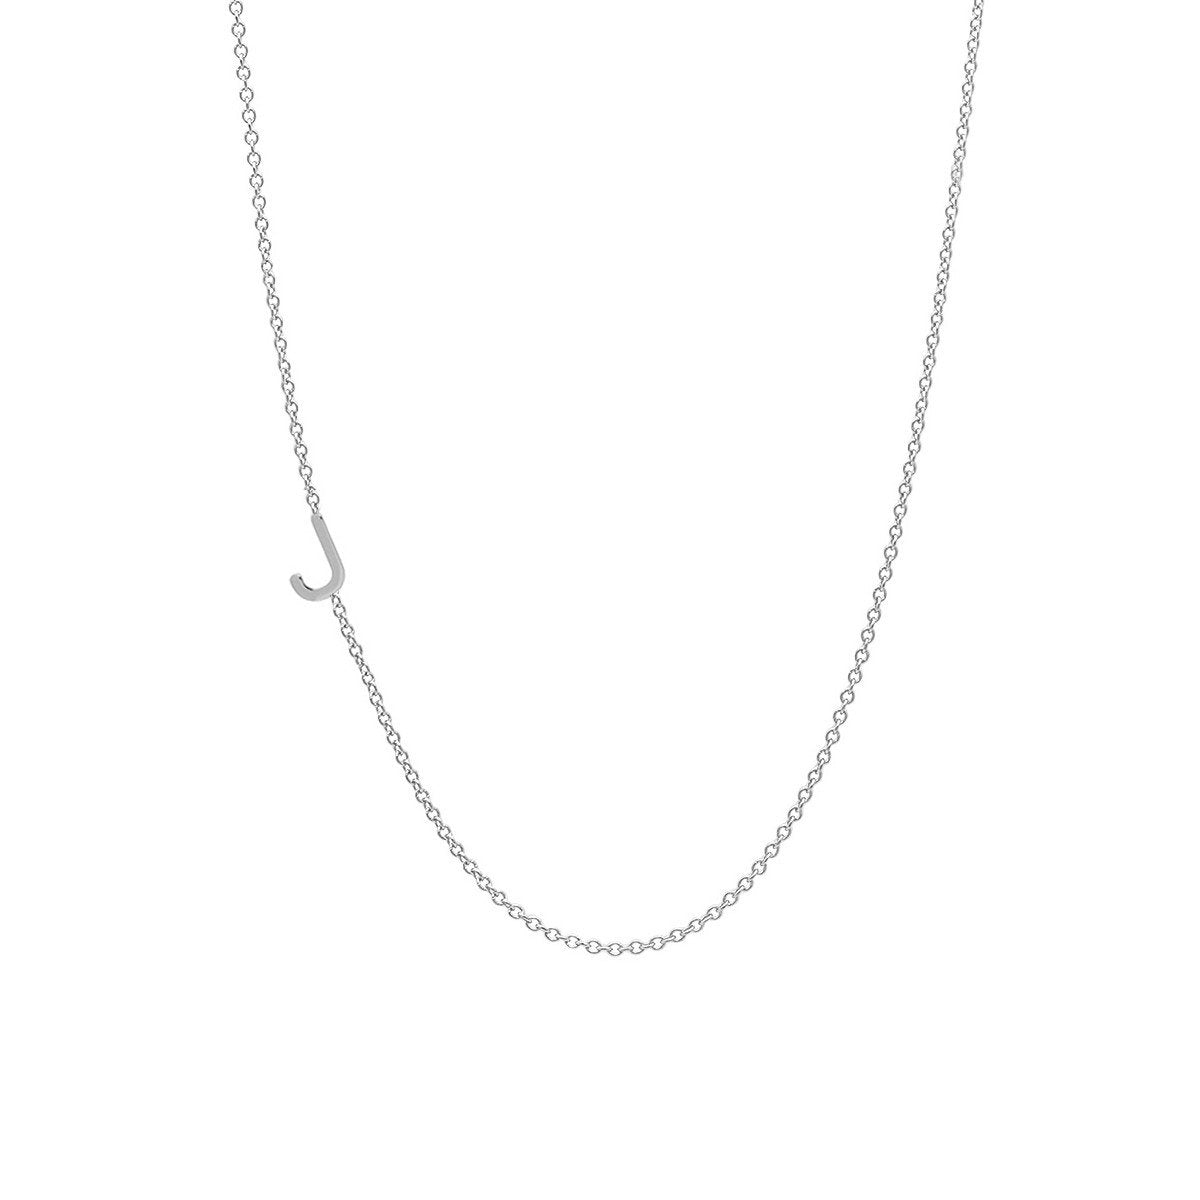 INITIAL NECKLACE - WHITE GOLD